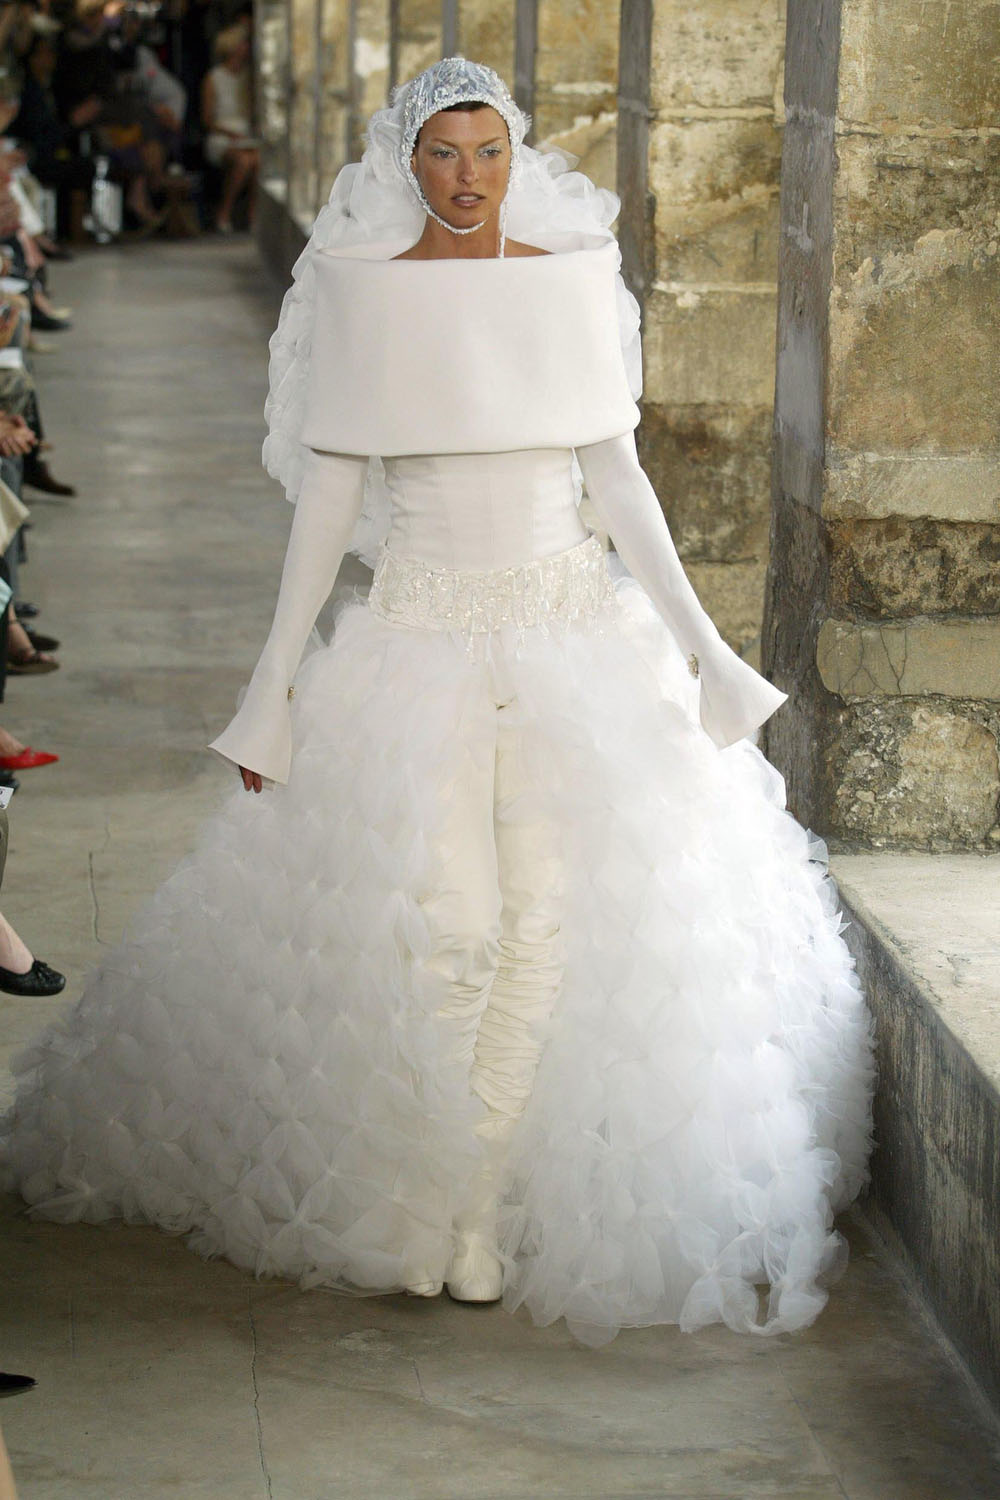 Best chanel wedding dresses these are the celebrity chanel brides best chanel wedding dresses these are the celebrity chanel brides to know junglespirit